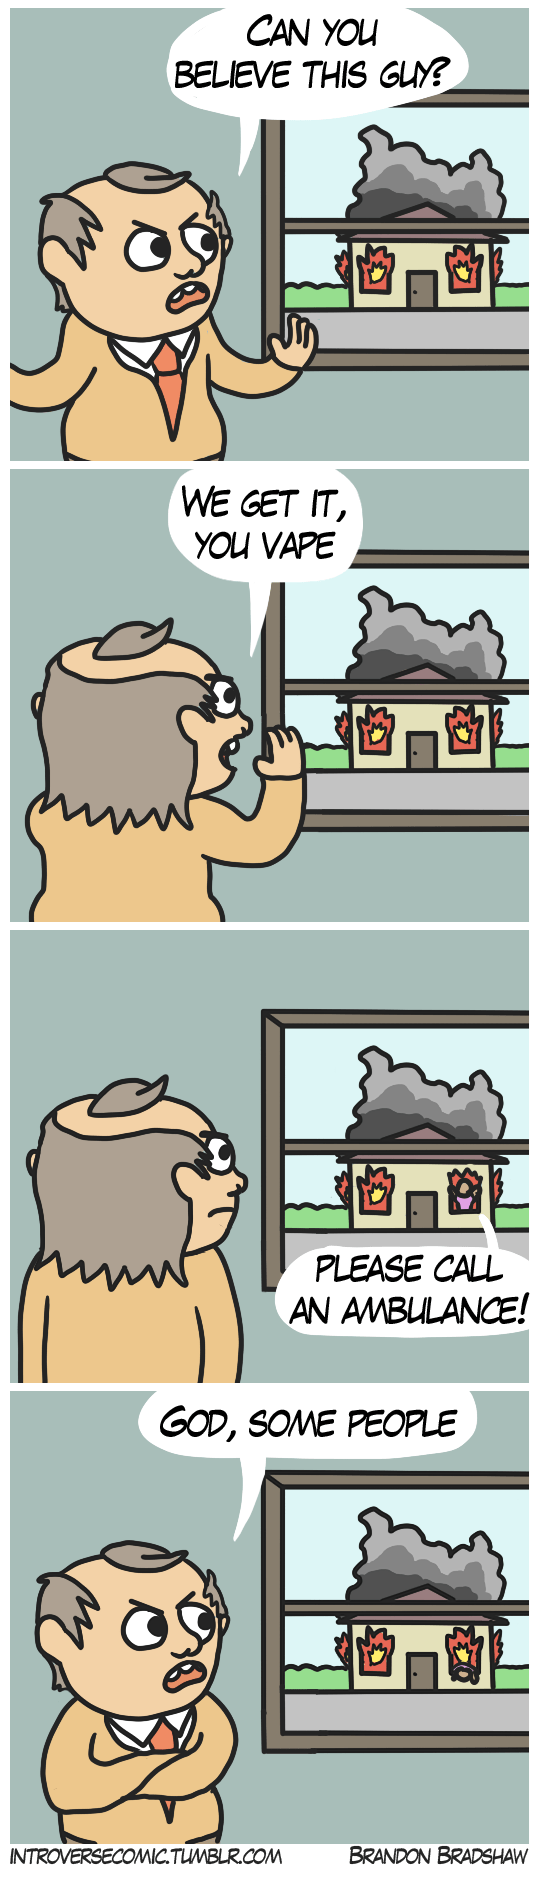 vape-smoking-web-comics-angry-reaction